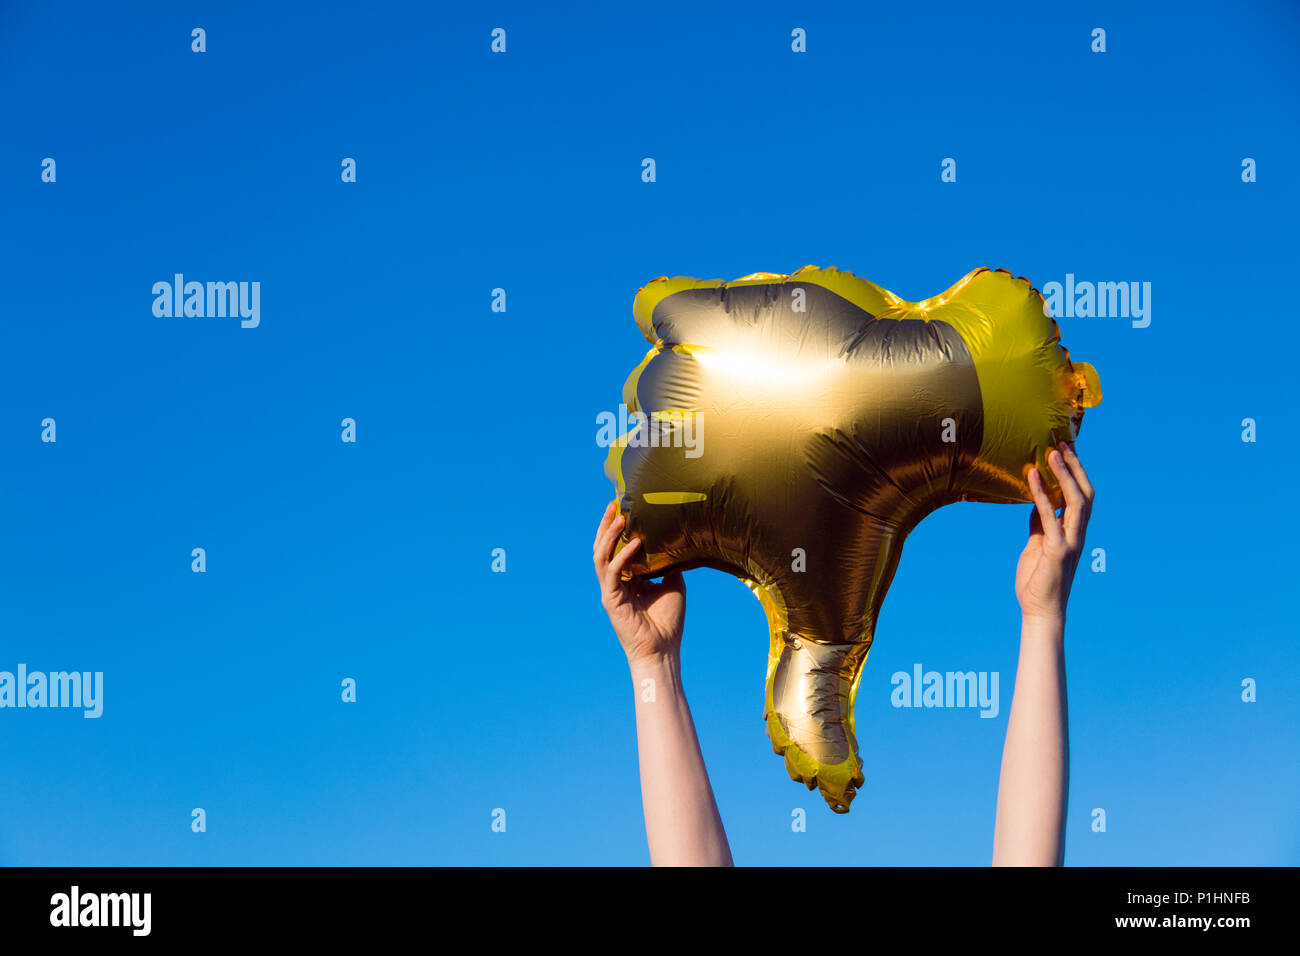 Golden thumbs down dislike balloon held up against a bright blue summer sky - Stock Image